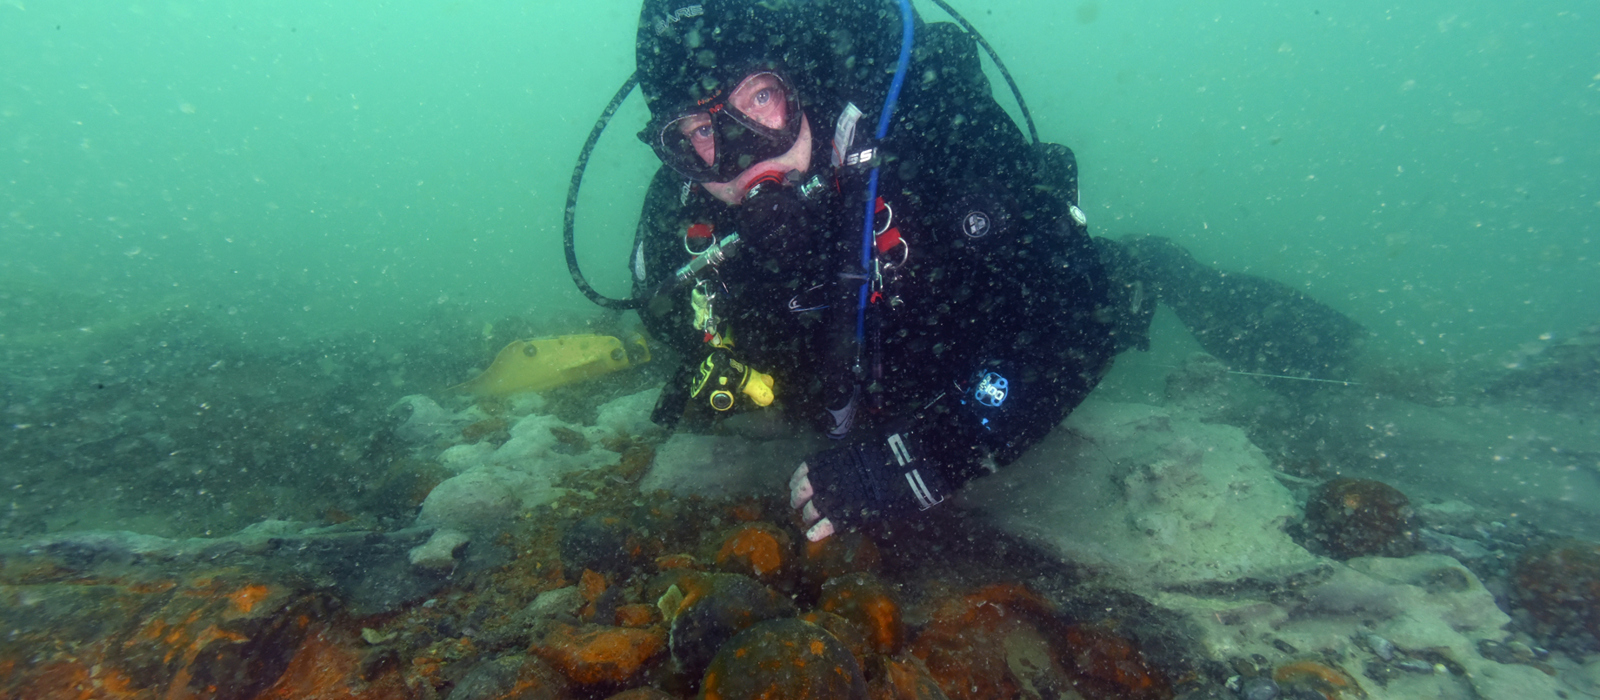 NAS Protected Wreck Day gives members a close encounter with two UK protected wrecks